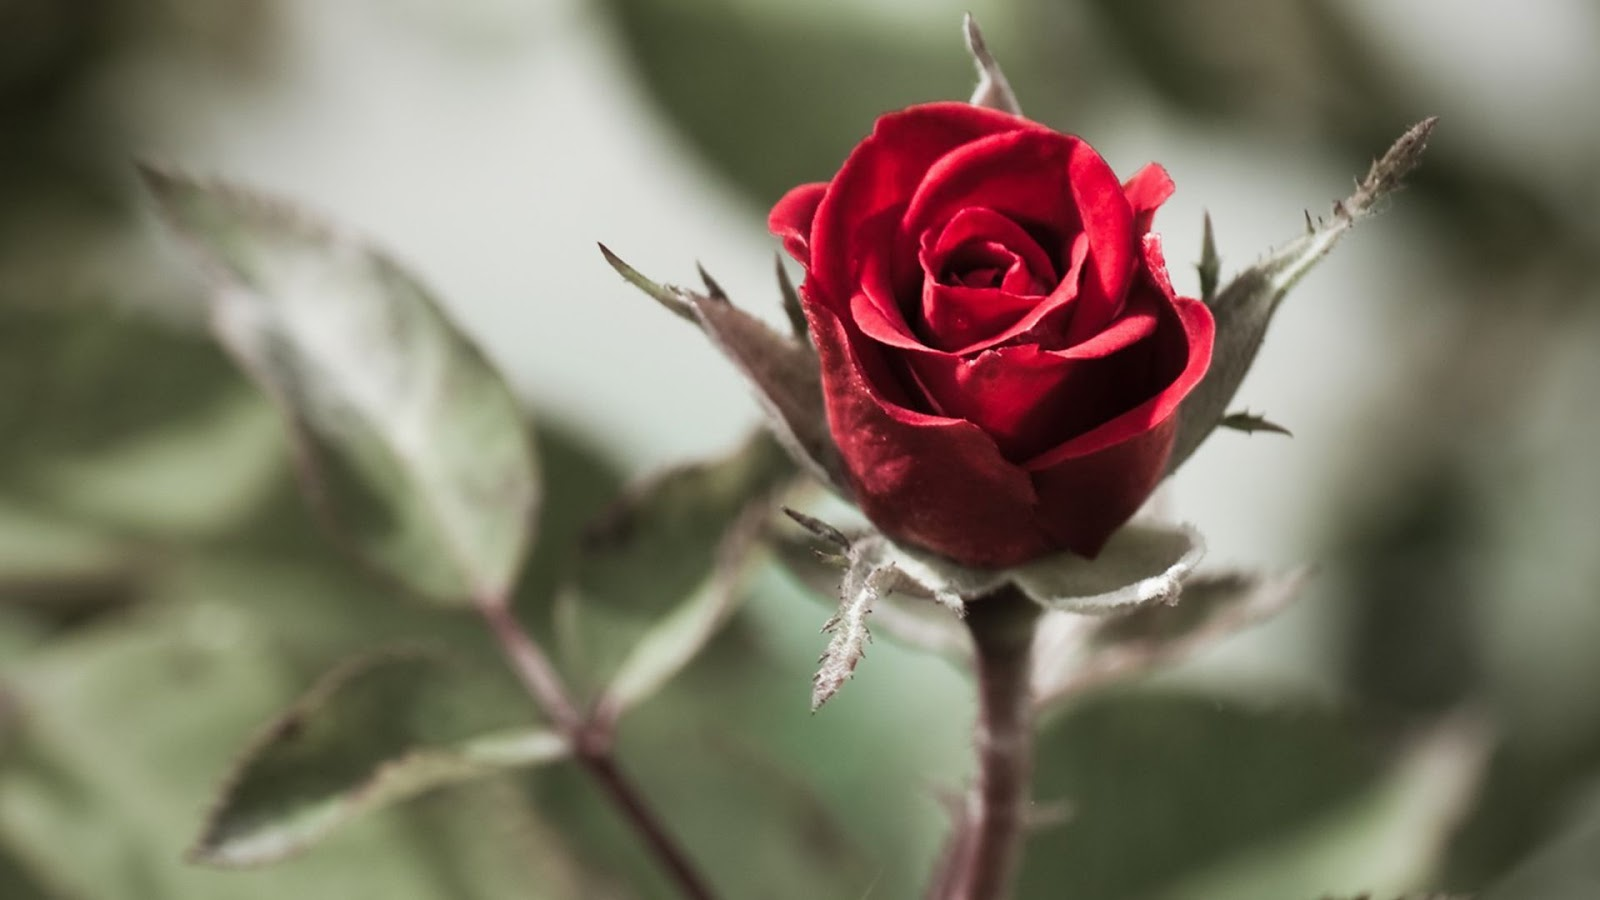 100 Red Rose Wallpapers Hd And 4k Resolution Download 1920x1080